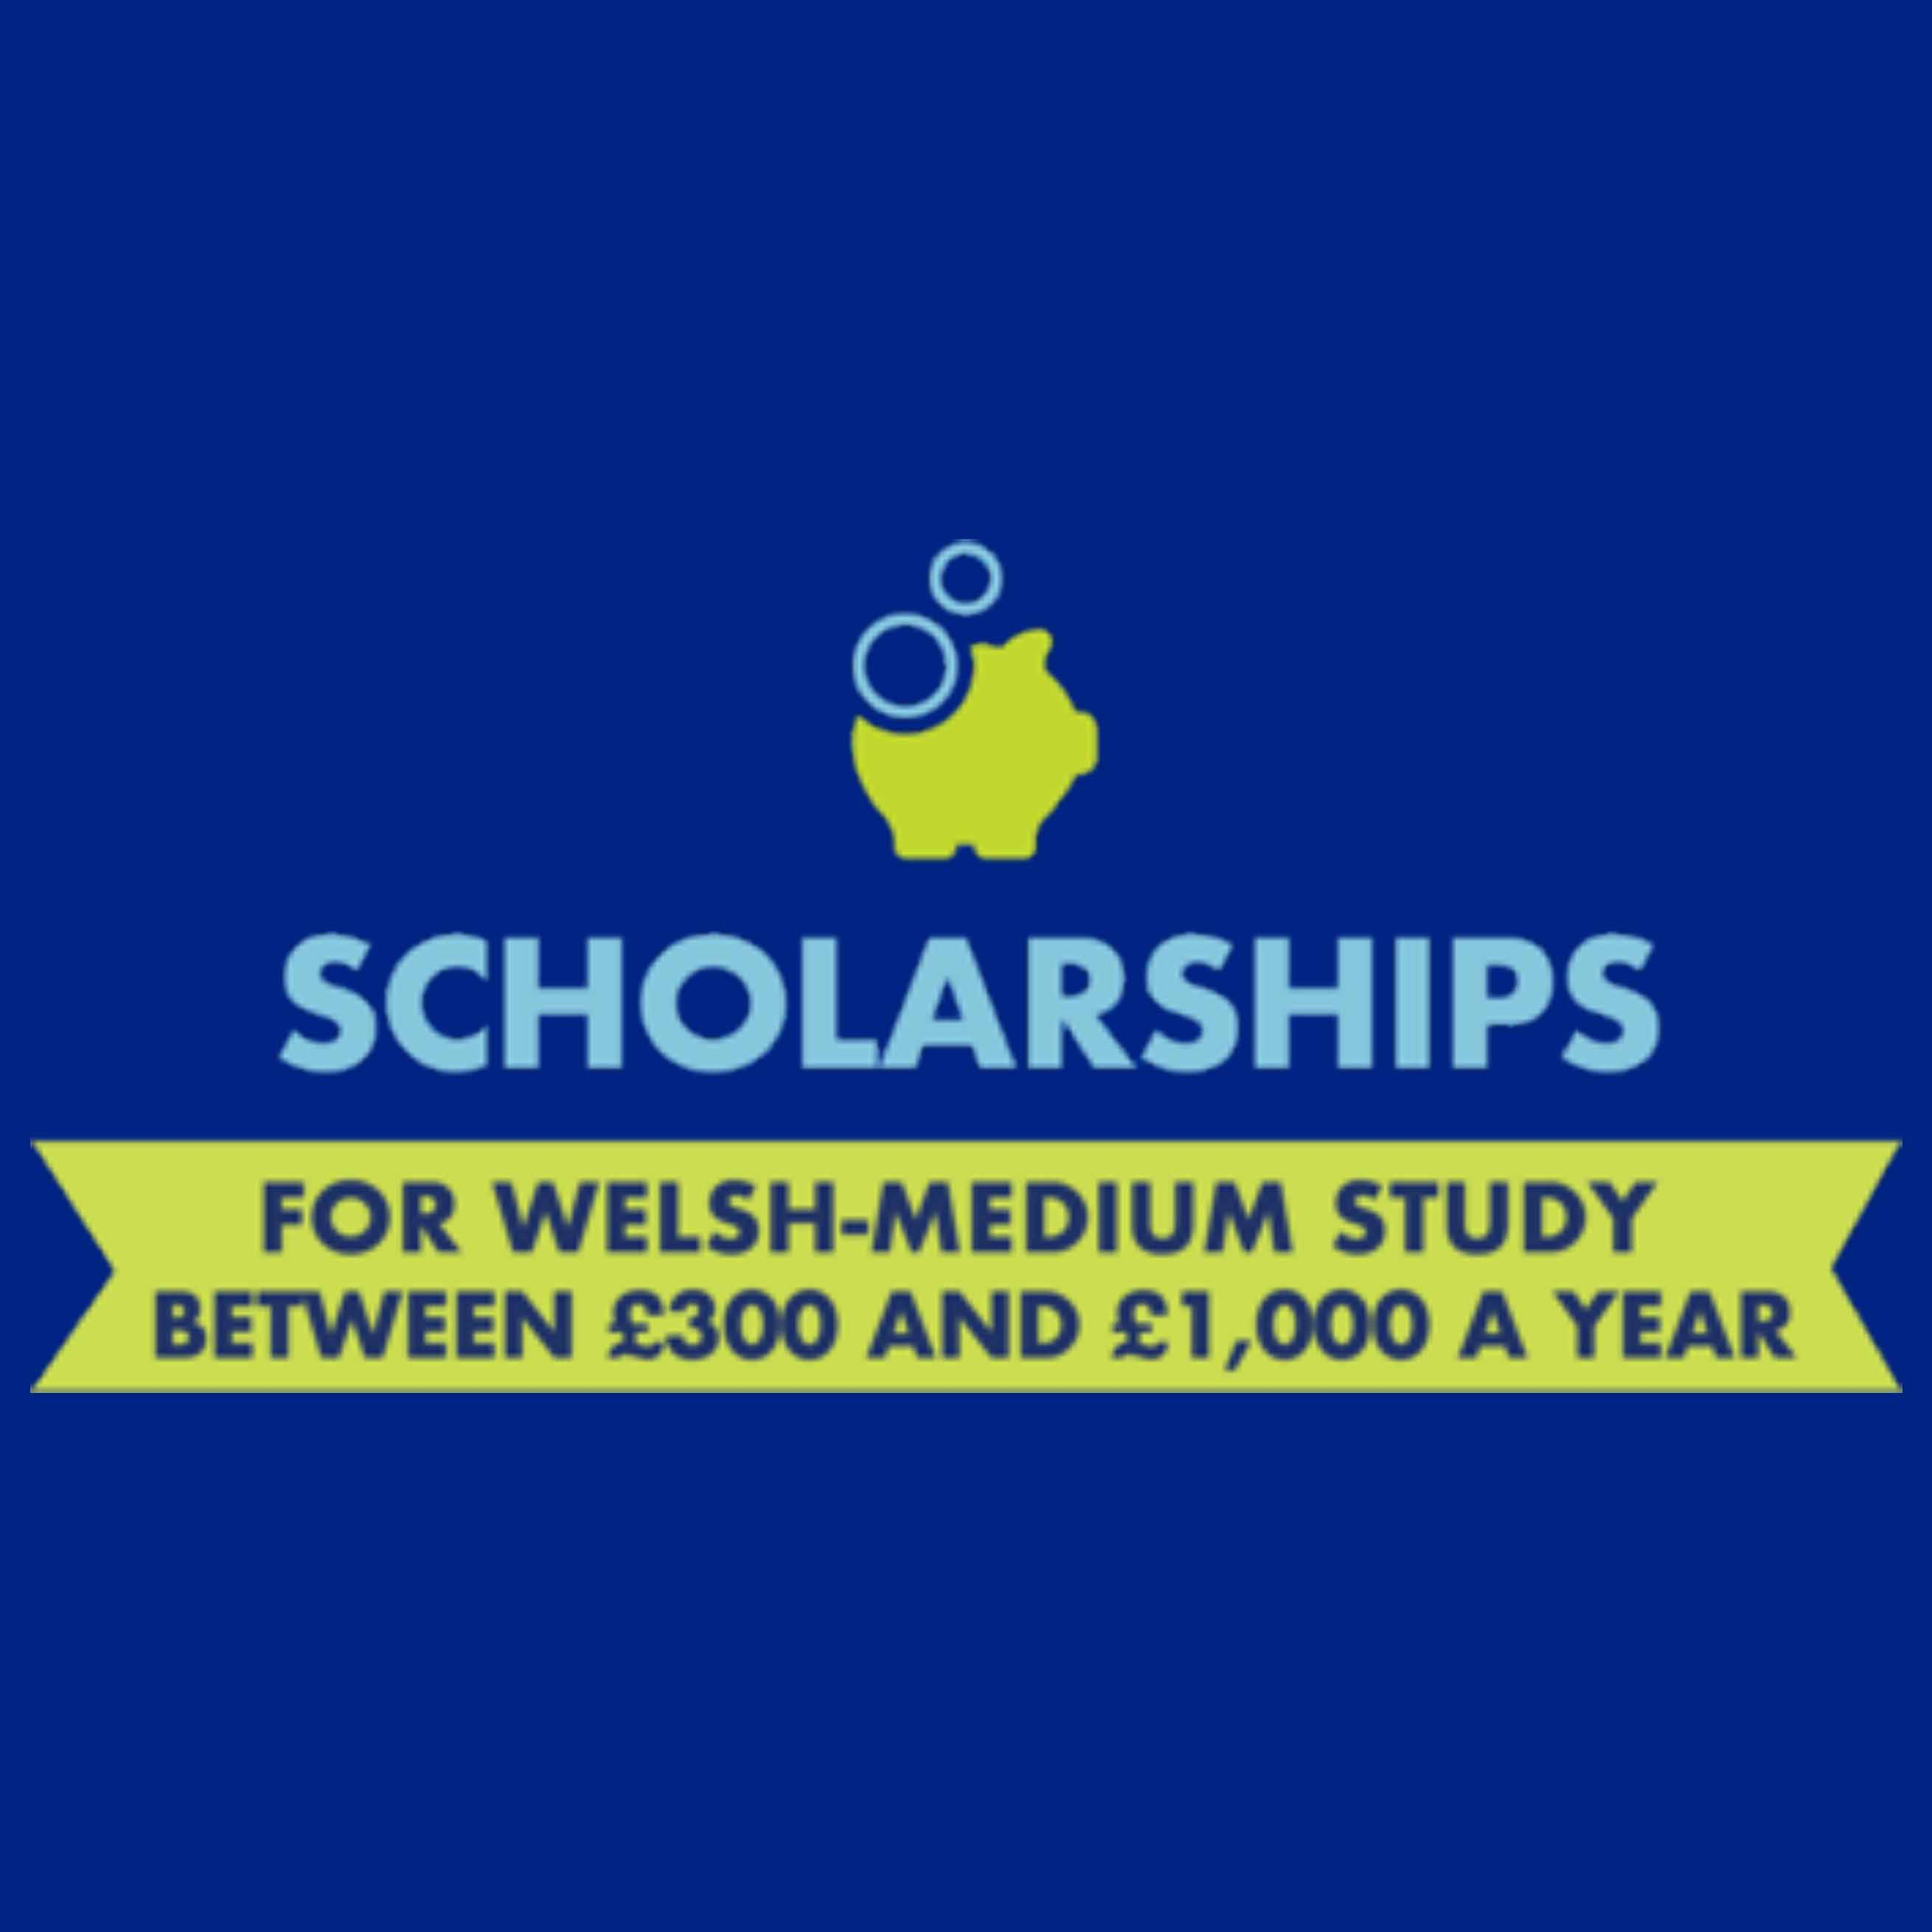 Scholarships for Welsh-medium study between £300 and £1000 a year